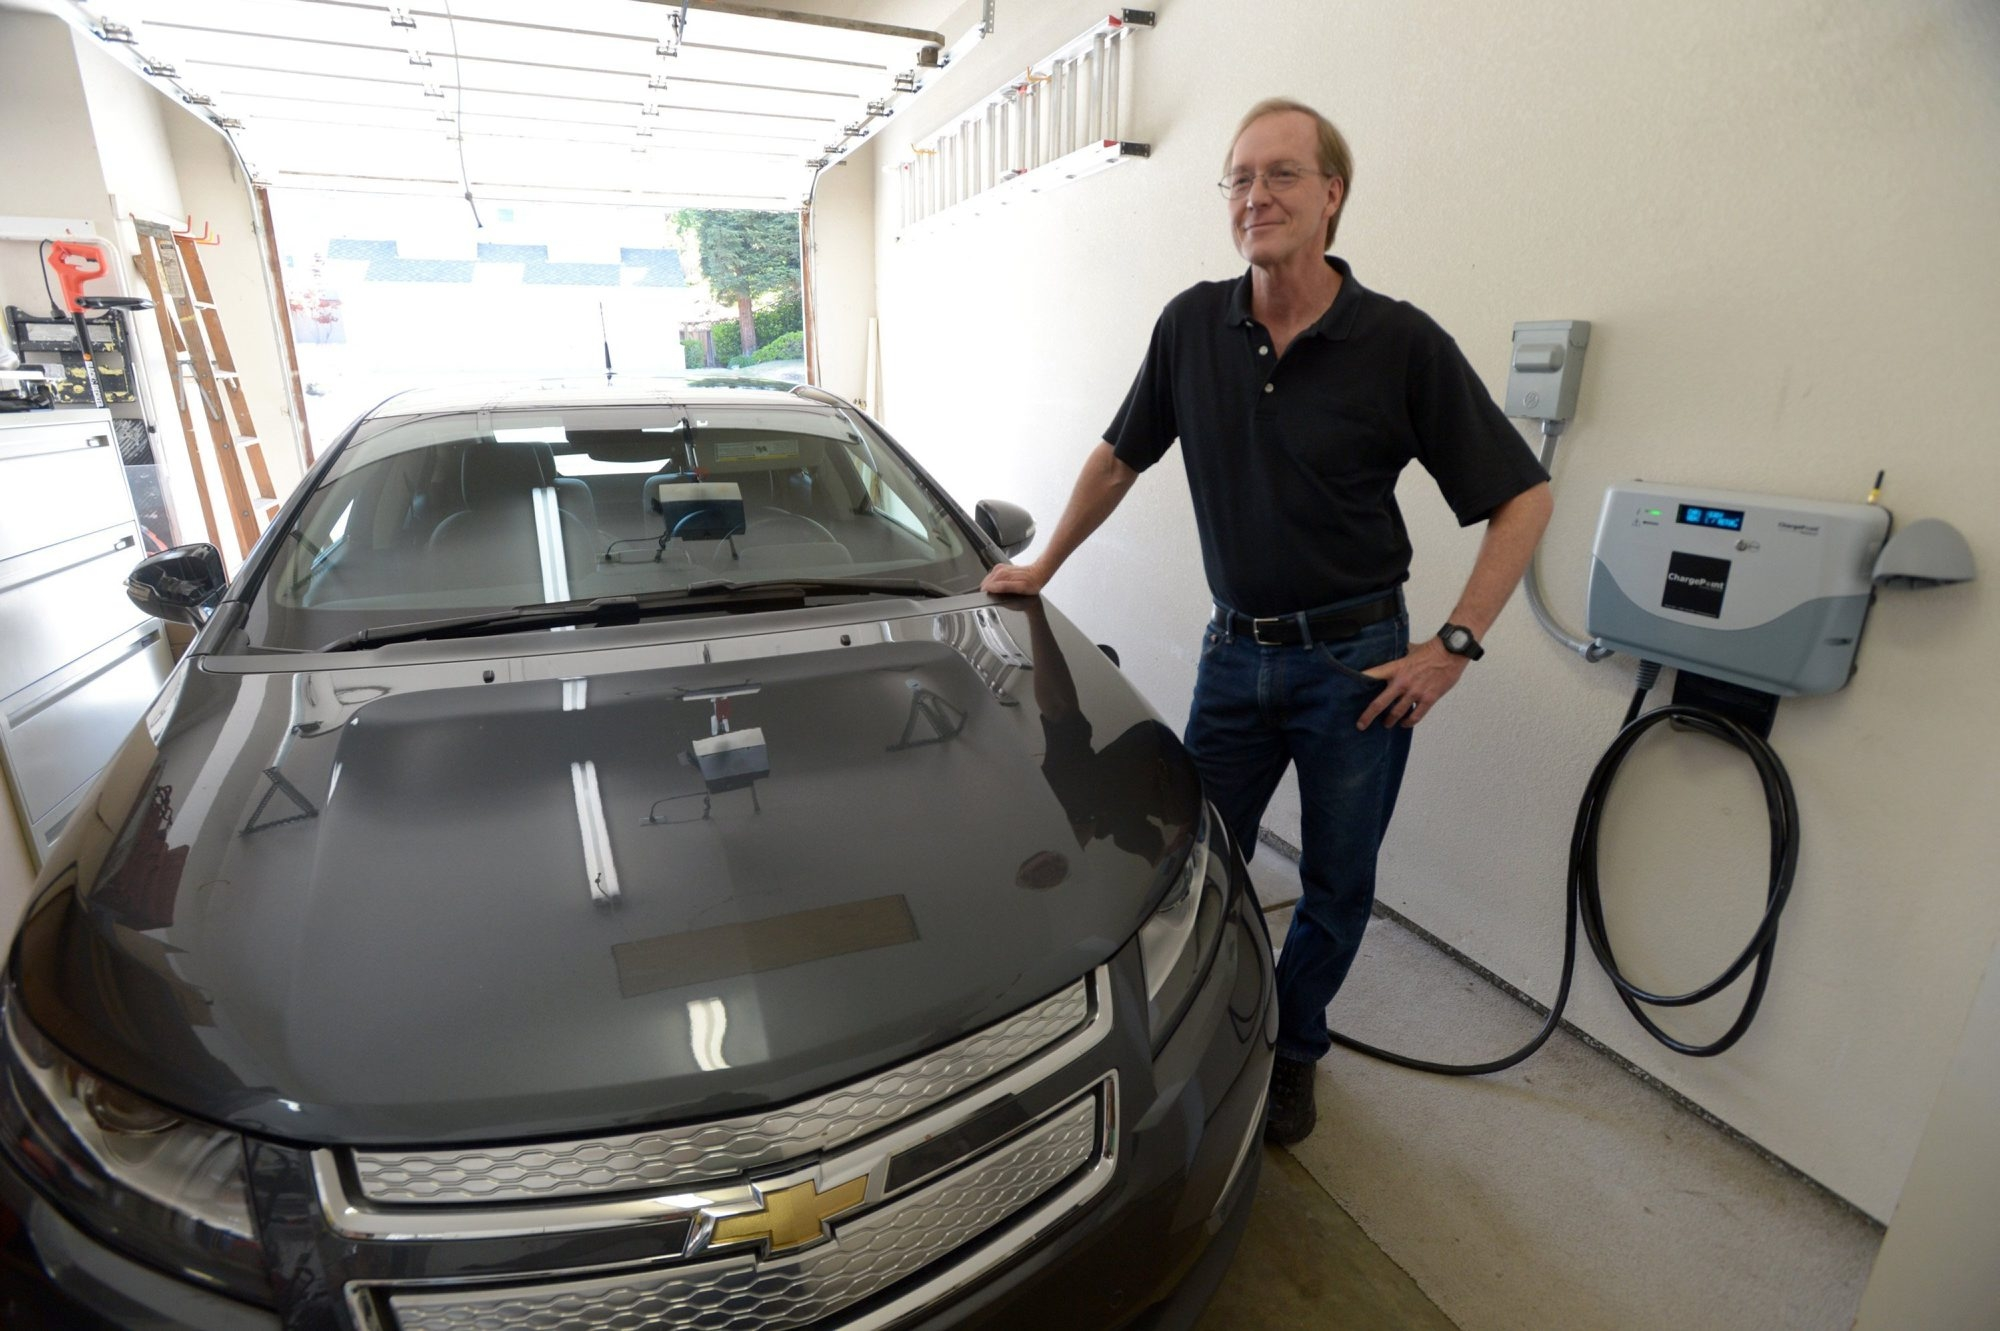 Randy Ross, an electrical engineer, stands near the plugged-in Chevy Volt he uses to commute from his Pleasanton, Calif., home. Ross also has a battery-based energy storage device, mounted on the wall of his garage, that is part of a pilot project from SolarCity. He currently pays just $1 a year for the battery system.